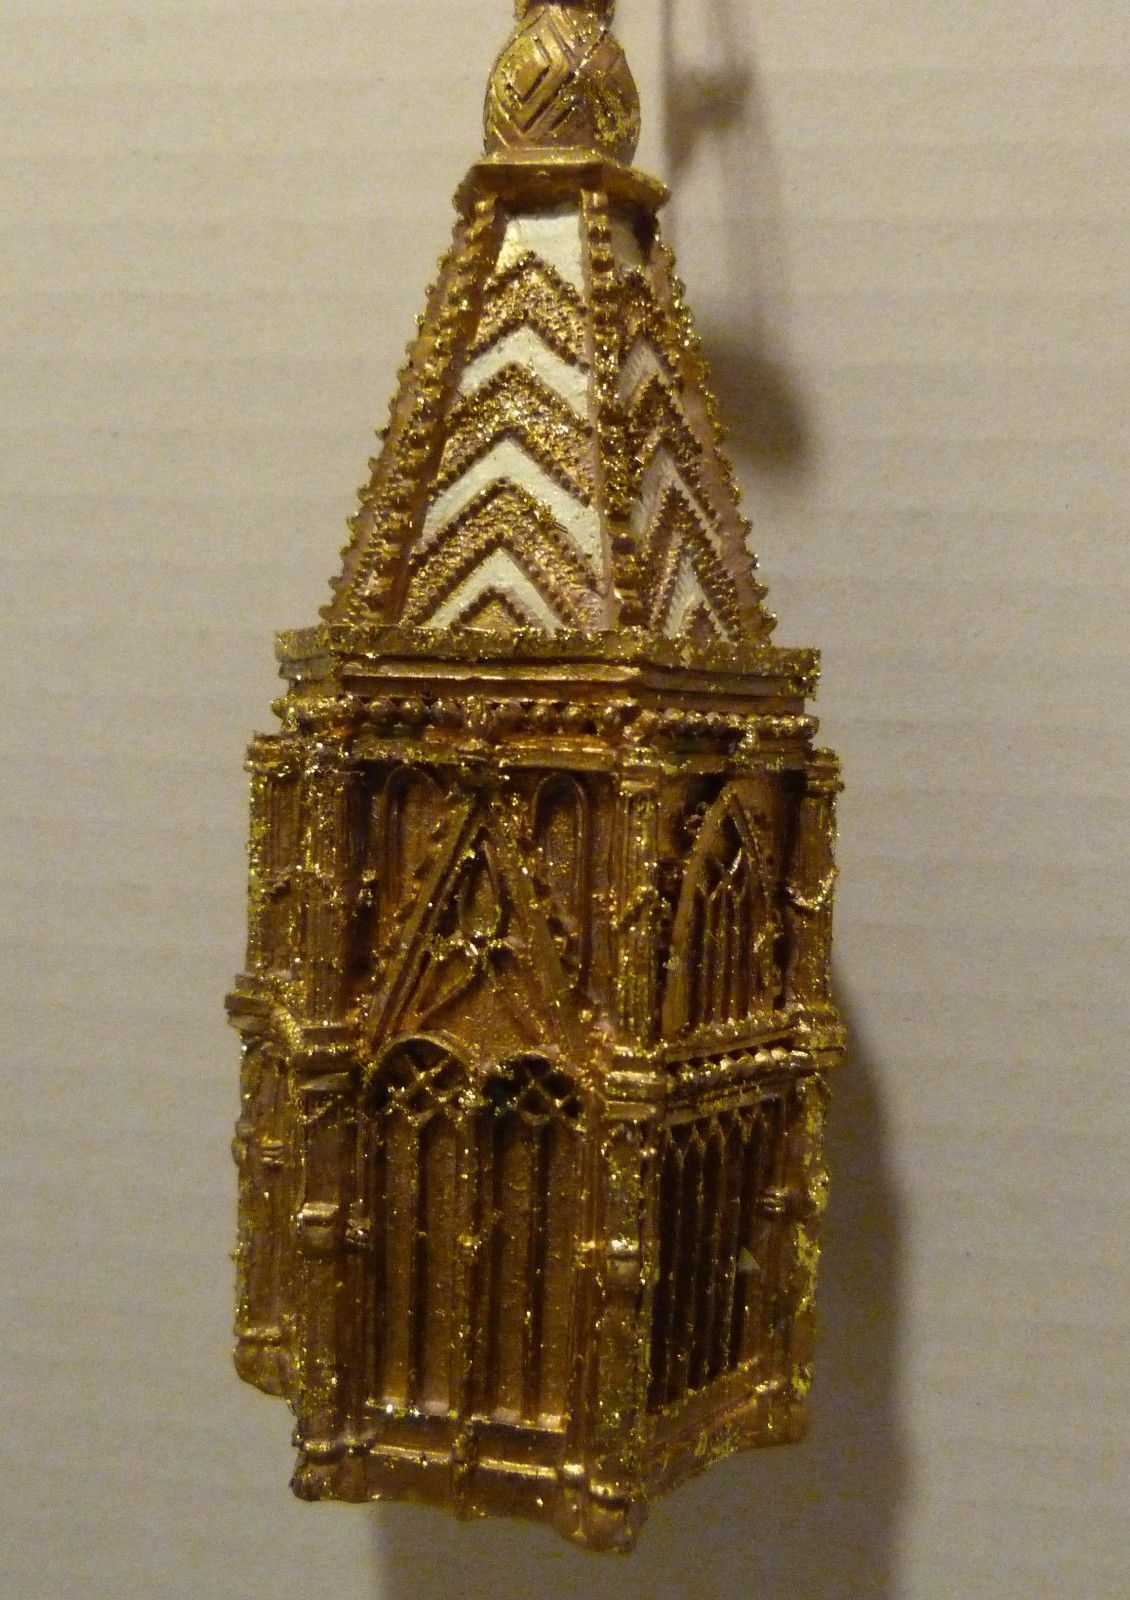 Victoria & Albert Royal Museum Gold Cathedral Christmas Ornament by SILVESTRI - $20.98